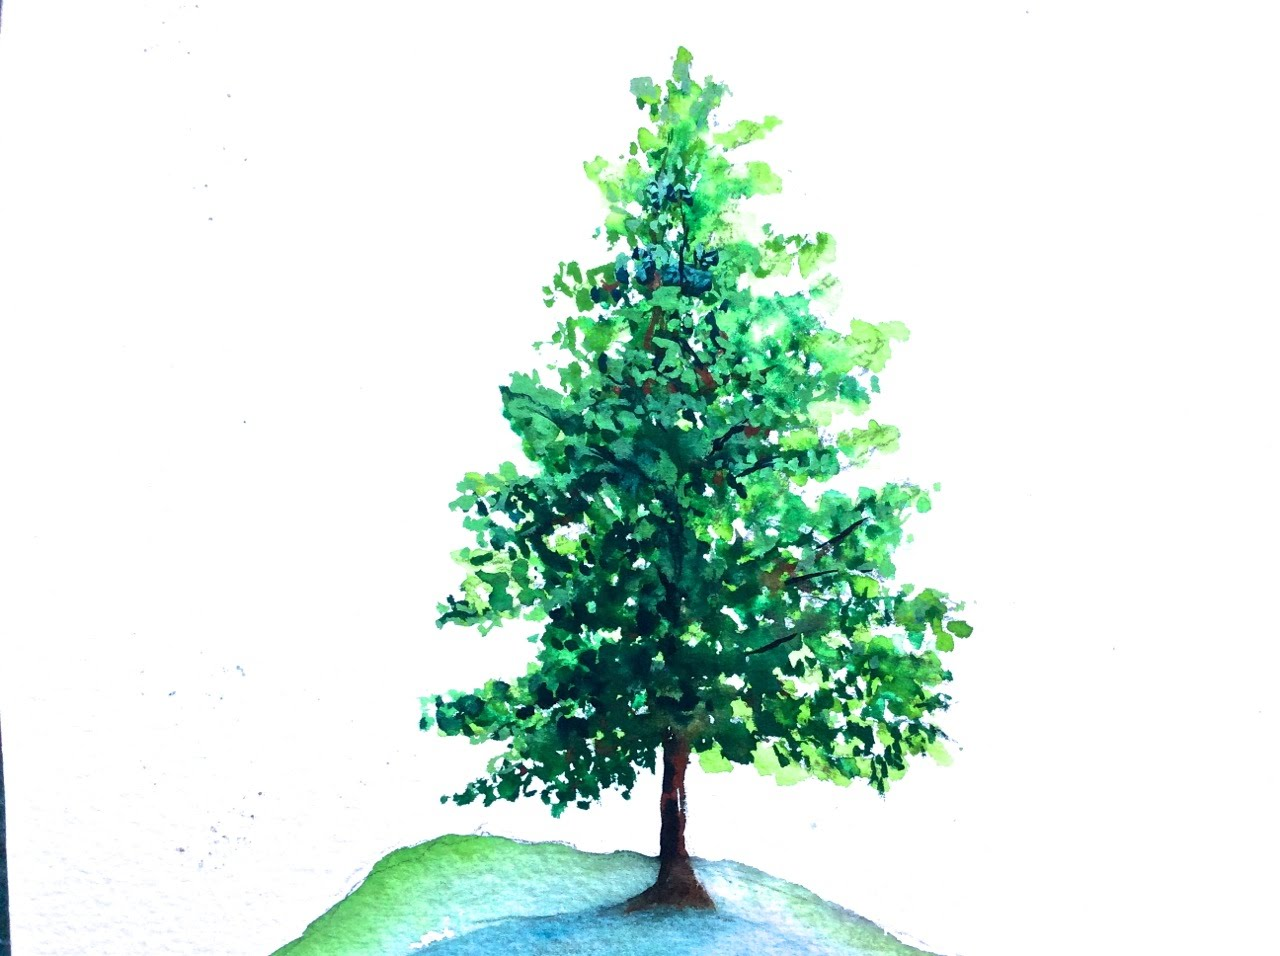 On YouTube: Tutorial how to paint a Pine Tree with Watercolor, fast and easy